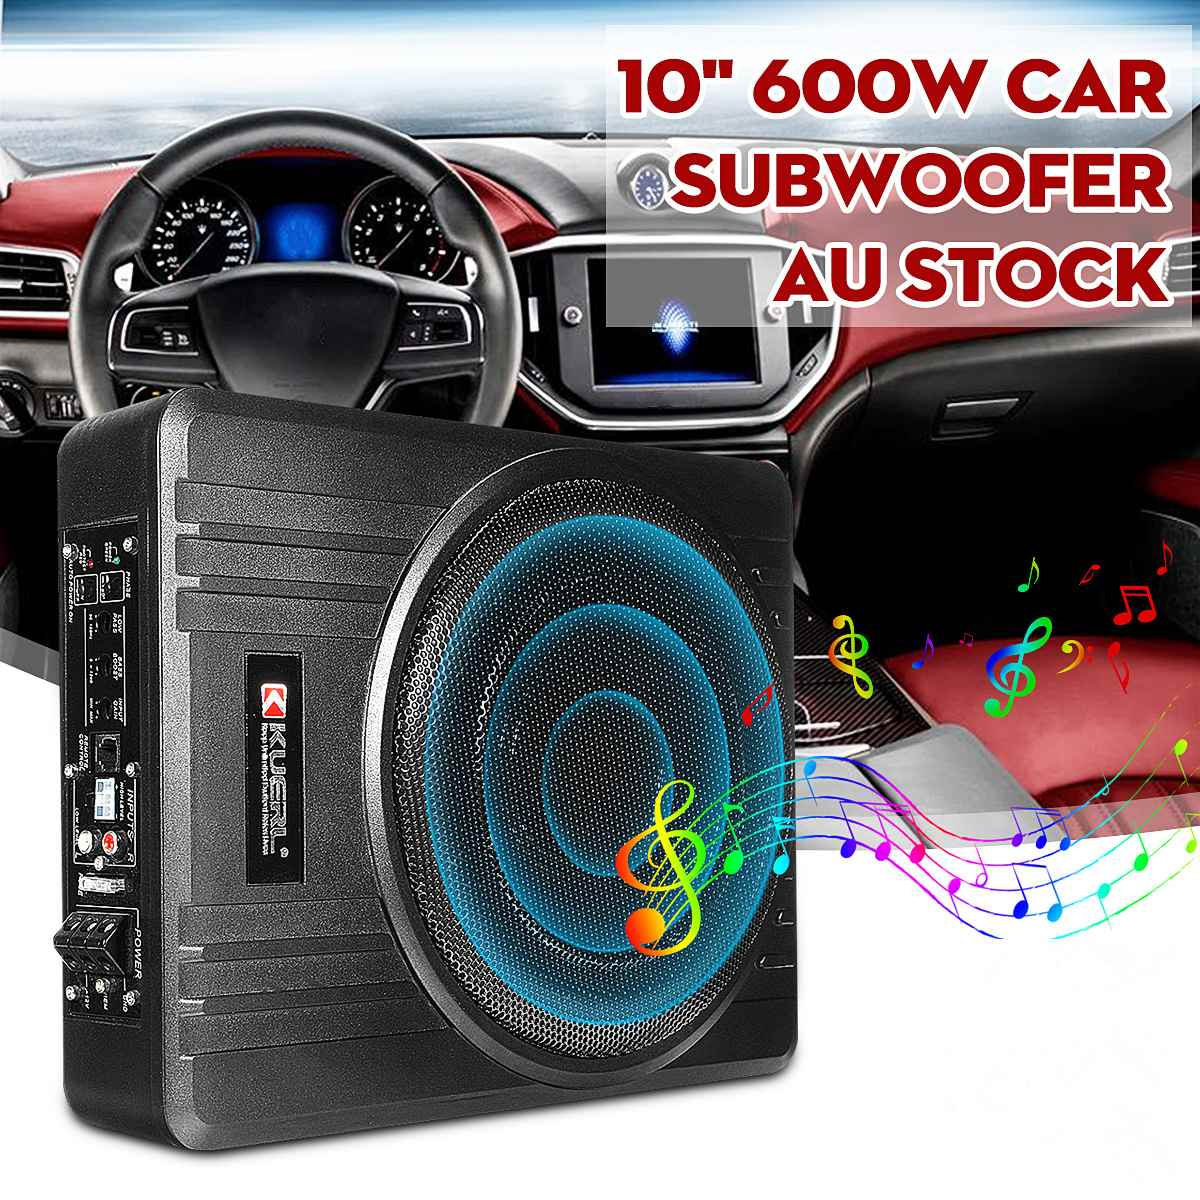 10 Inch 600W <font><b>Car</b></font> Subwoofer <font><b>Car</b></font> <font><b>Audio</b></font> Slim Under Seat Active Subwoofer Bass Amplifier <font><b>Speaker</b></font> <font><b>Car</b></font> Amplifier Subwoofers Woofer image